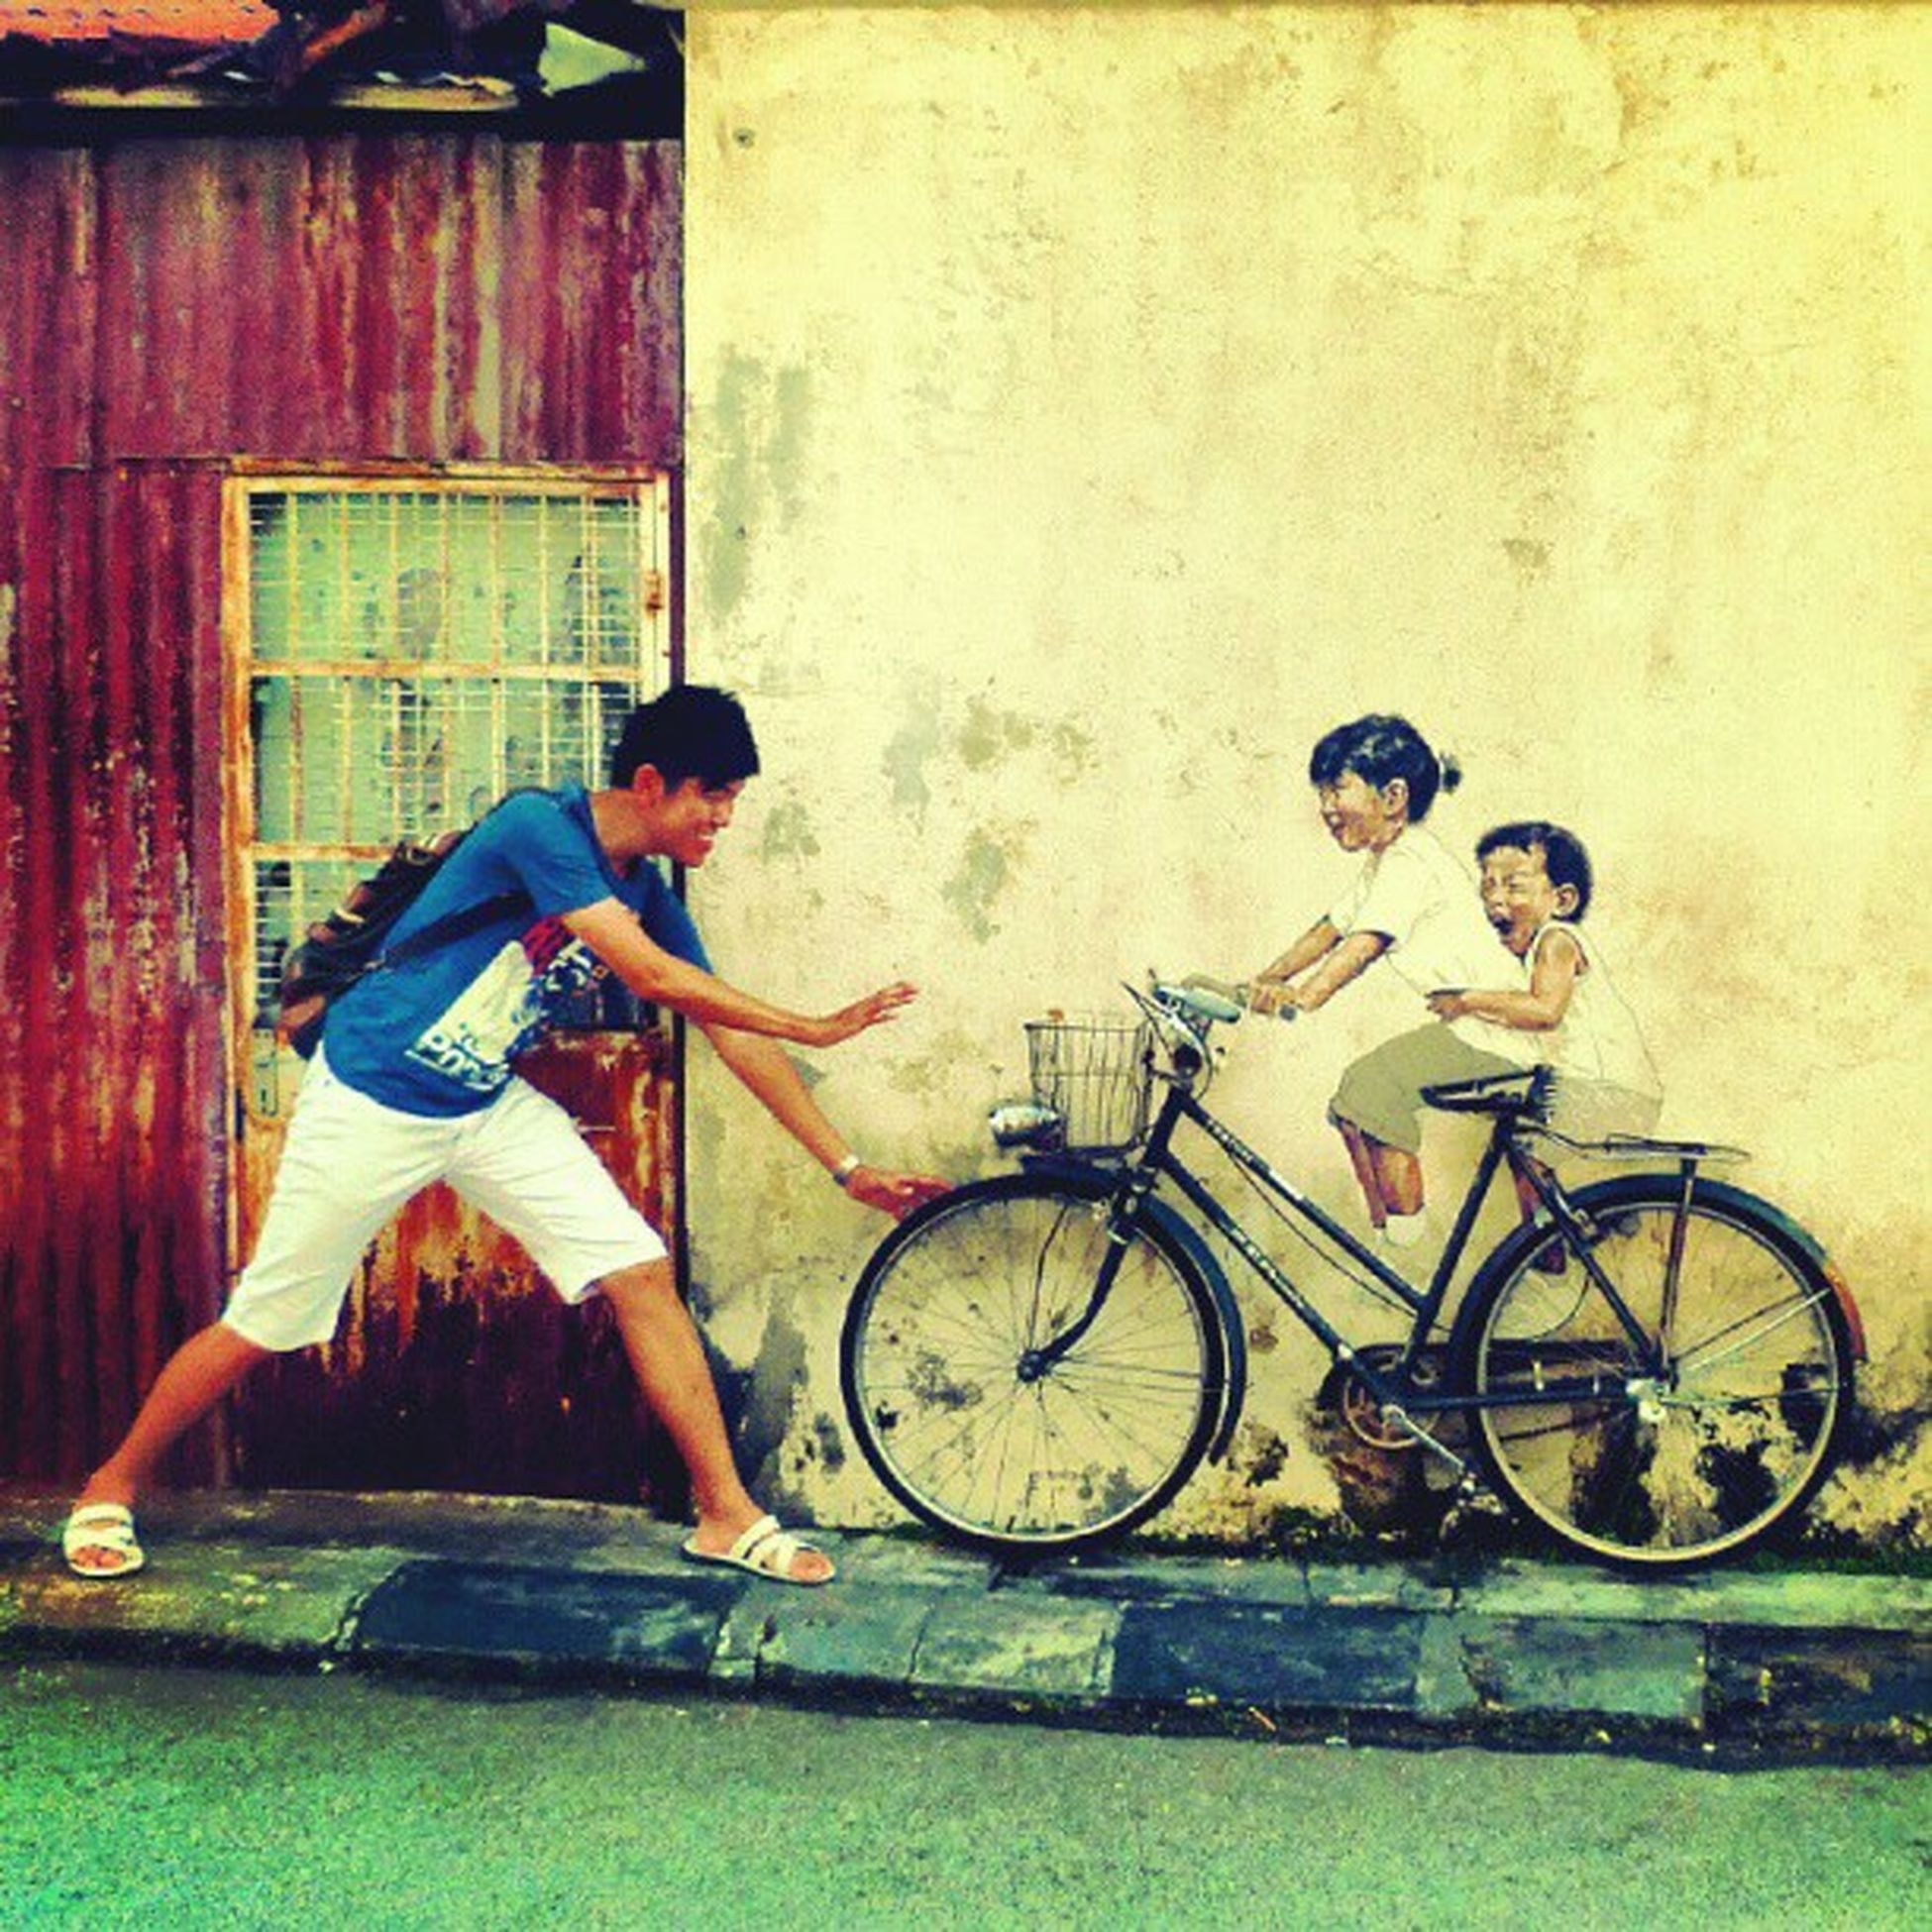 stop, i wanna have a ride as well... Penang Old Street Malaysia Georgetown Armenian mural littleboy littlegirl riding bicycle happy wall painting ig iger igmalaysia instagram like follow trip travel lumix camera 槟城 壁画 马来西亚 旅游